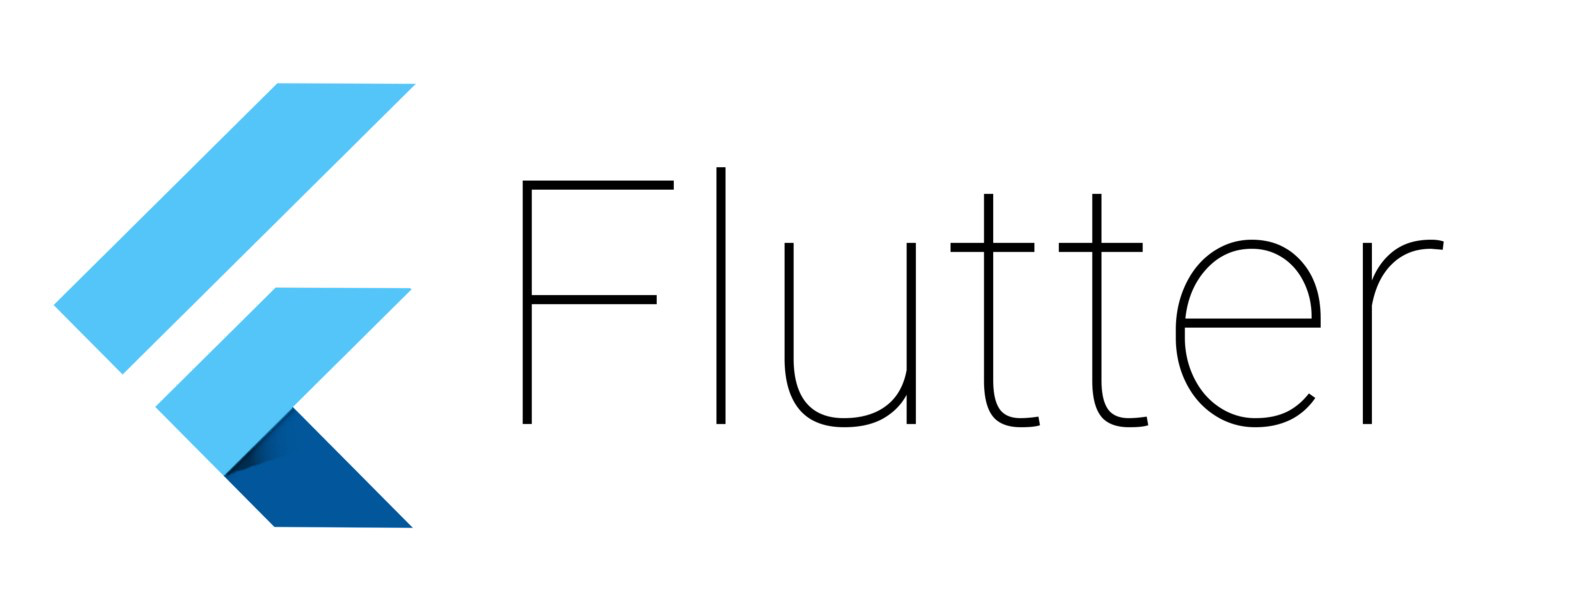 All the reasons Flutter can make your heart flutter? Or not